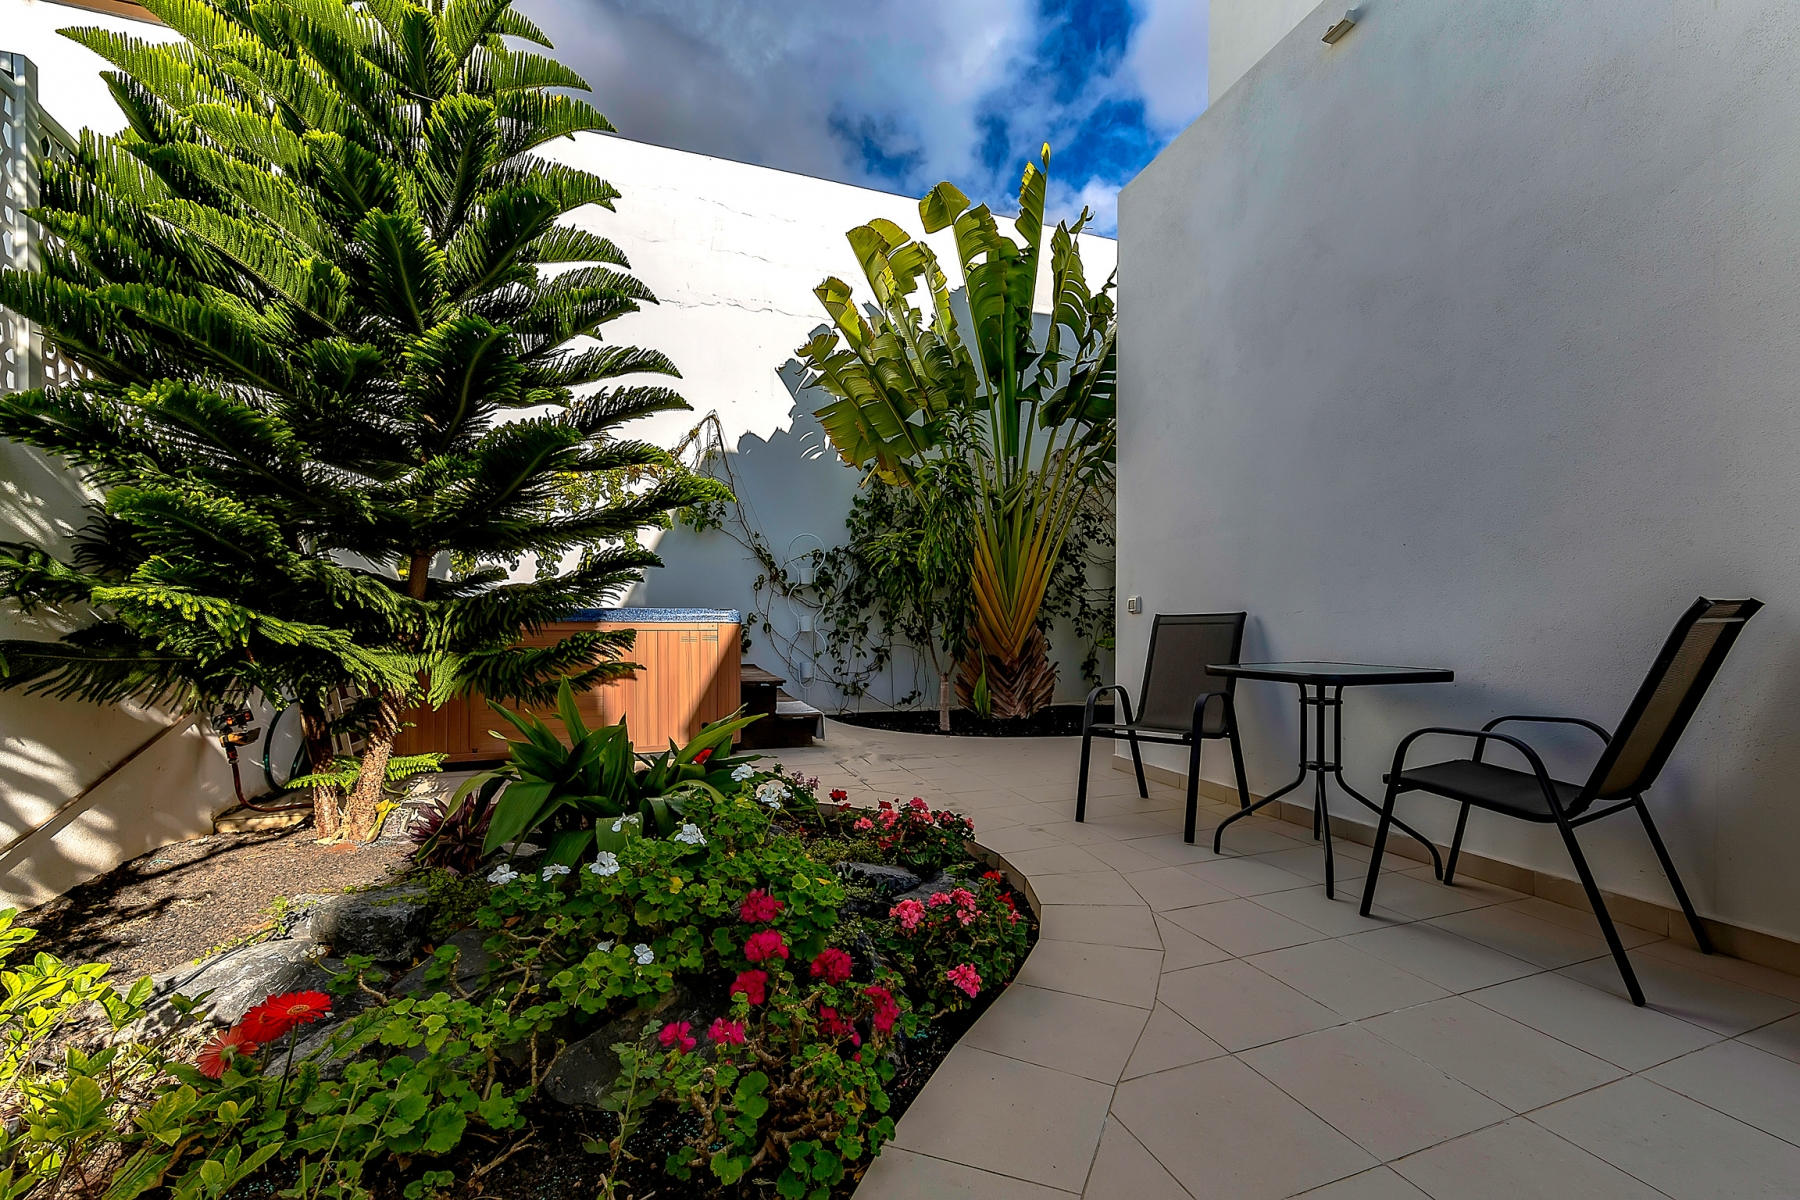 Properties for Sale in Tenerife, Canary Islands, Spain   SylkWayStar Real Estate. Luxury villa in the fashionable area of the south of the island of Tenerife – Madroñal.. Image-22825